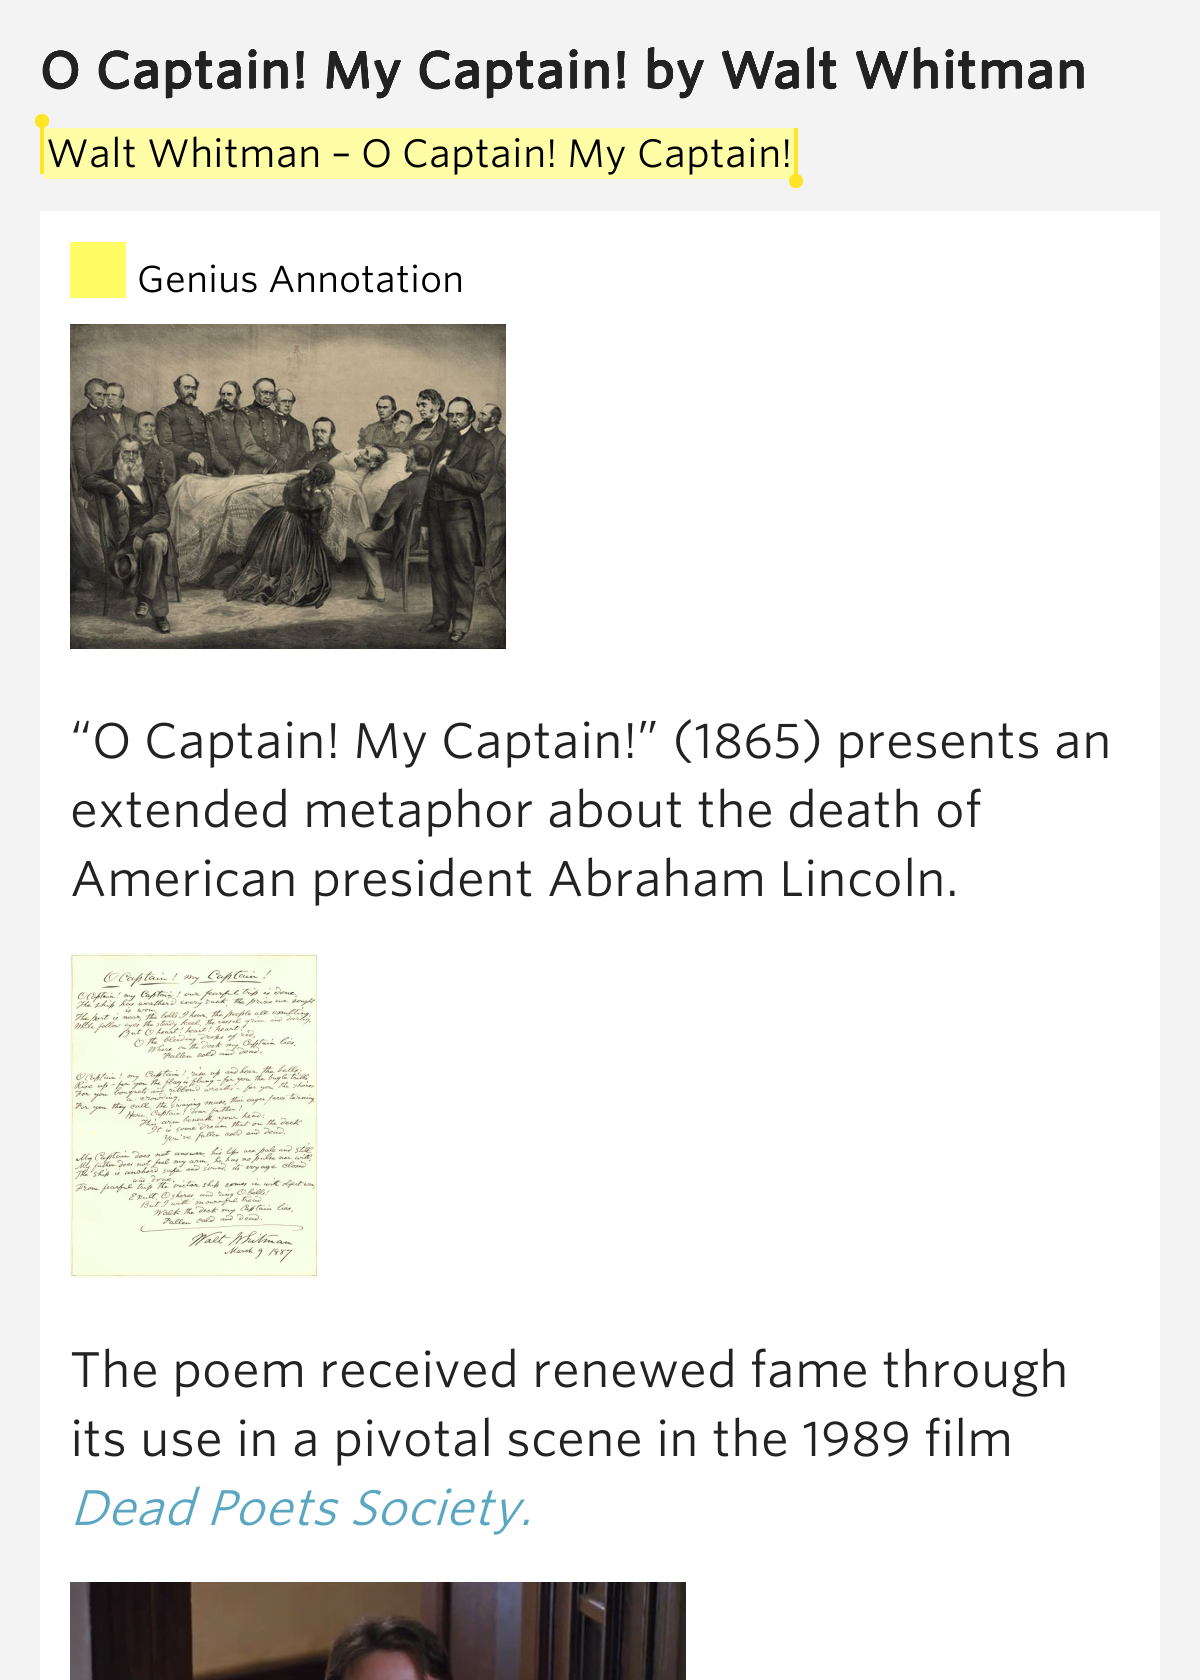 an analysis of the poem o captain my captain by walt whitman